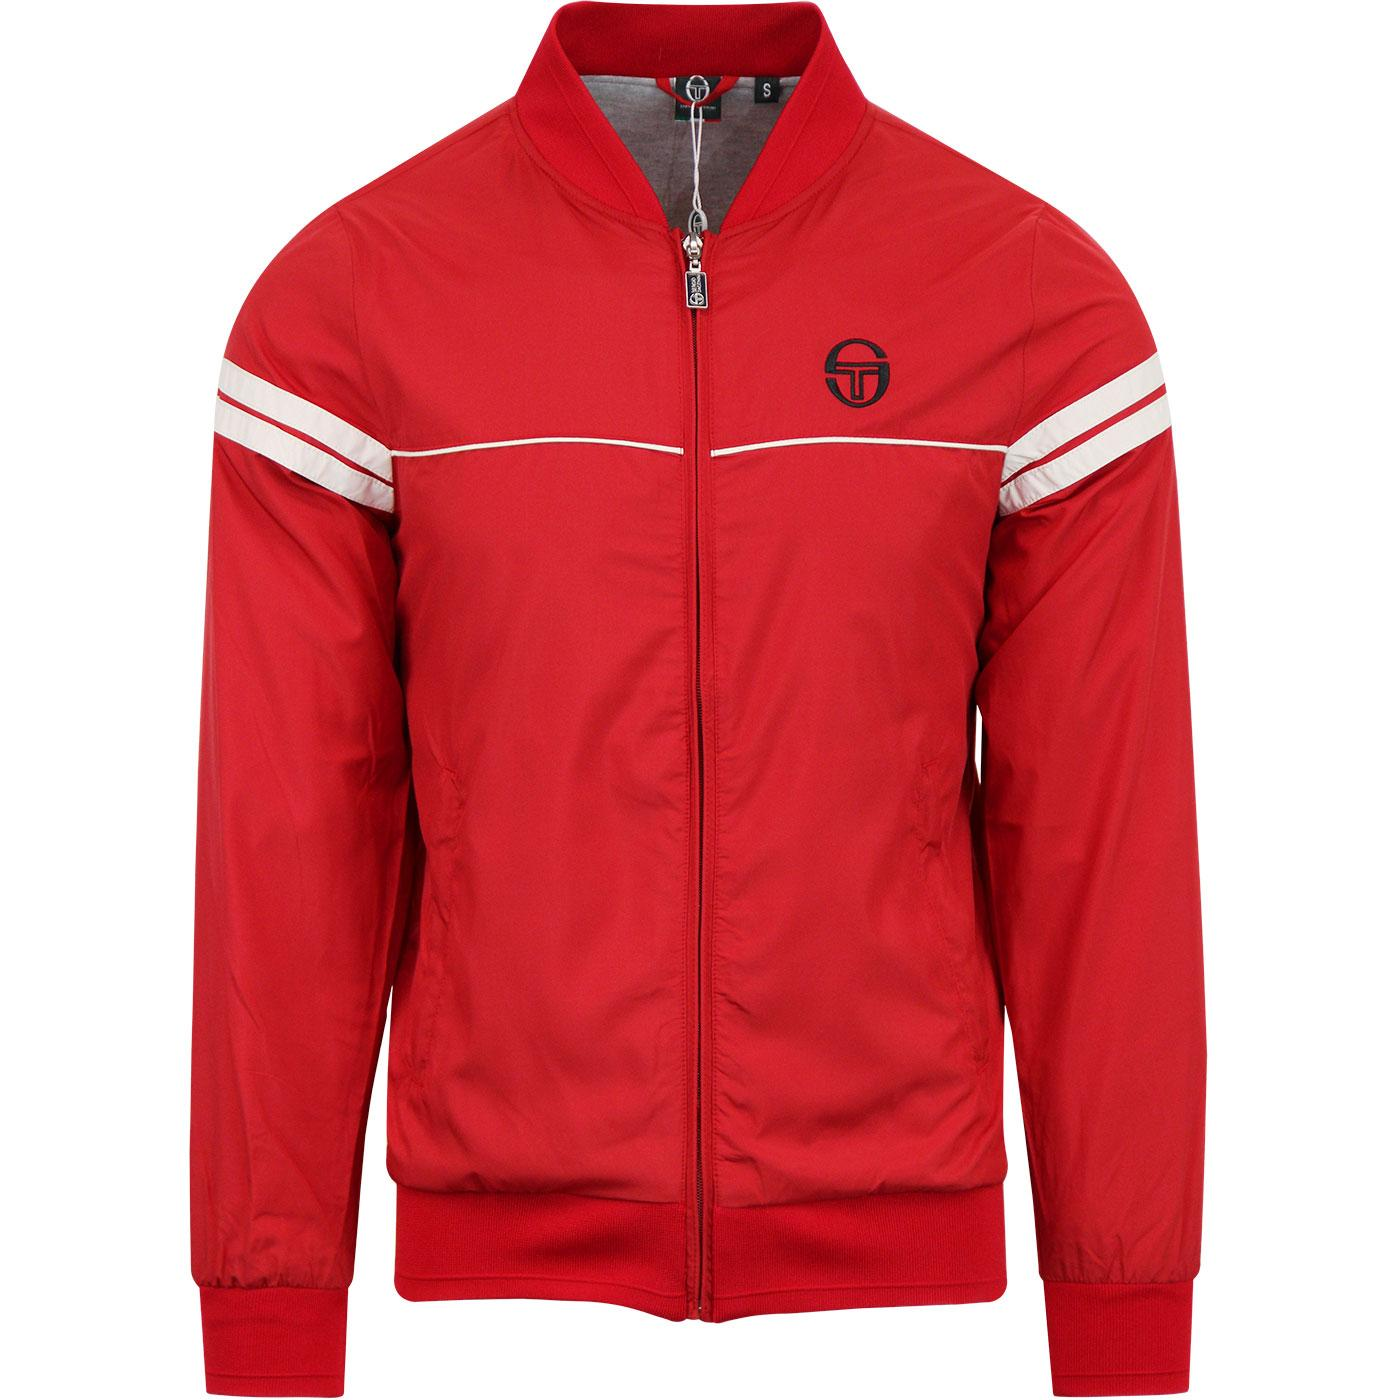 Orion SERGIO TACCHINI Retro Archive Jacket RED